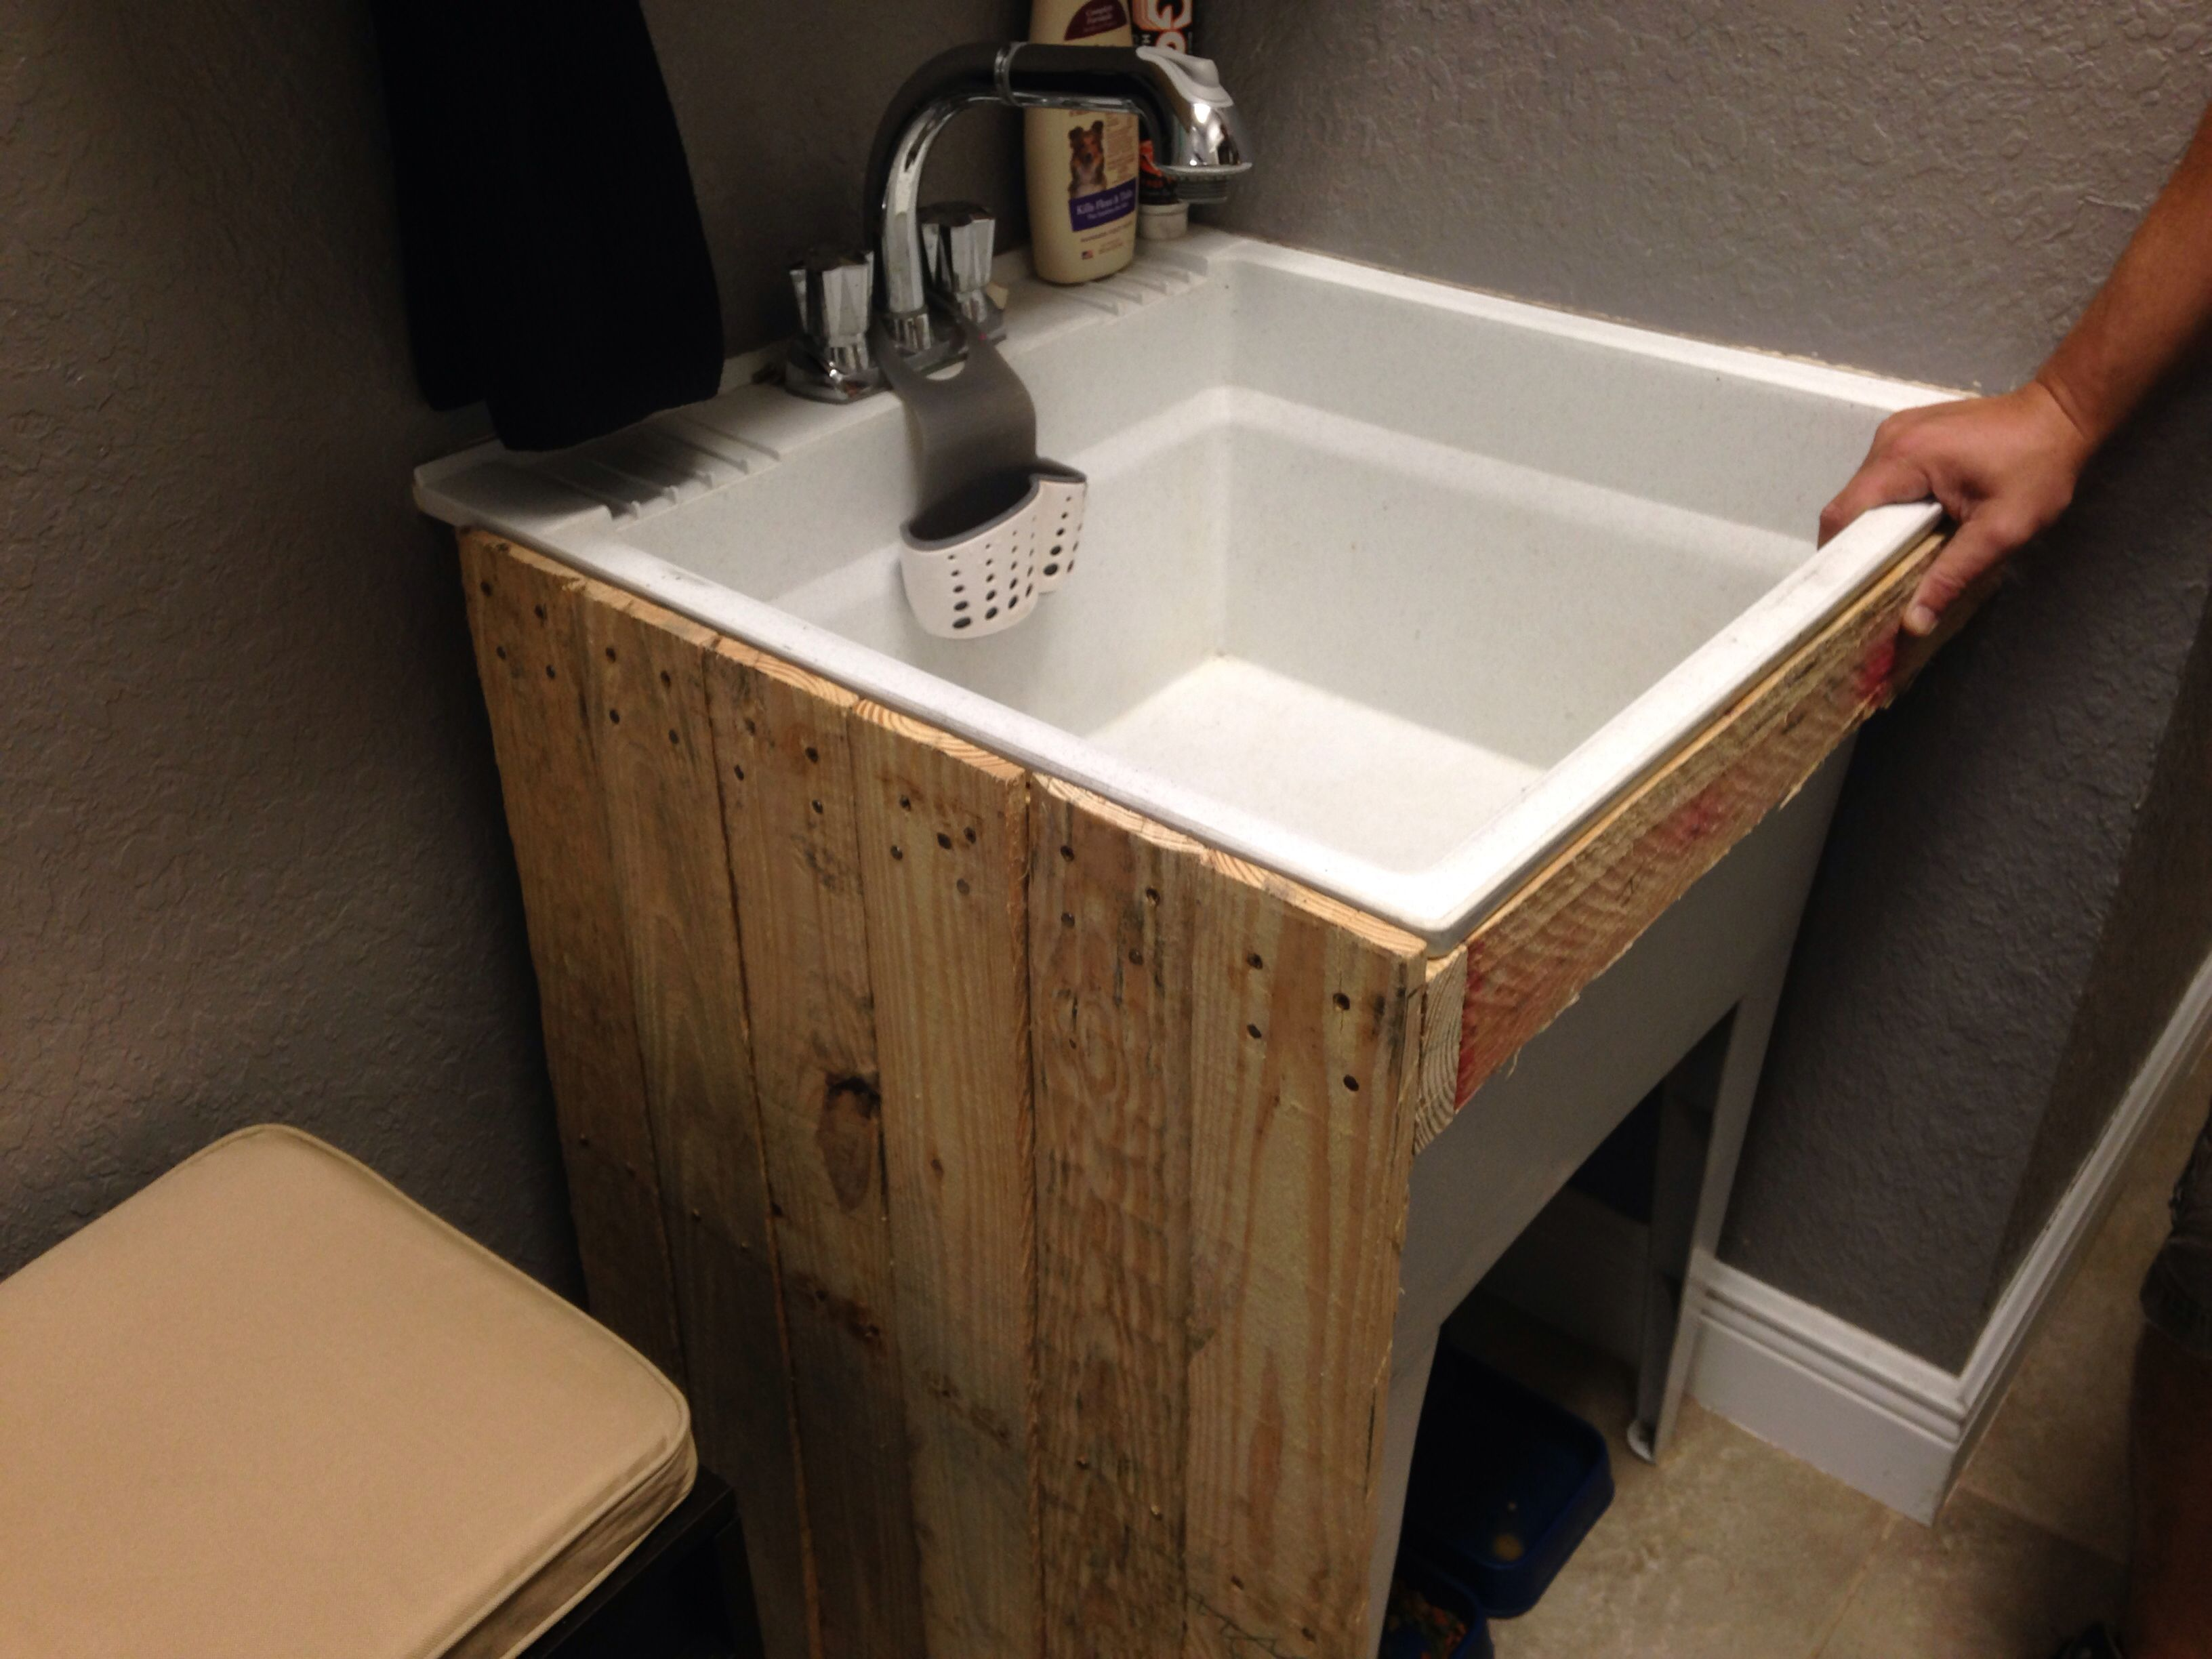 Lovely Laundry Room Utility Sink Ideas 16 With Additional